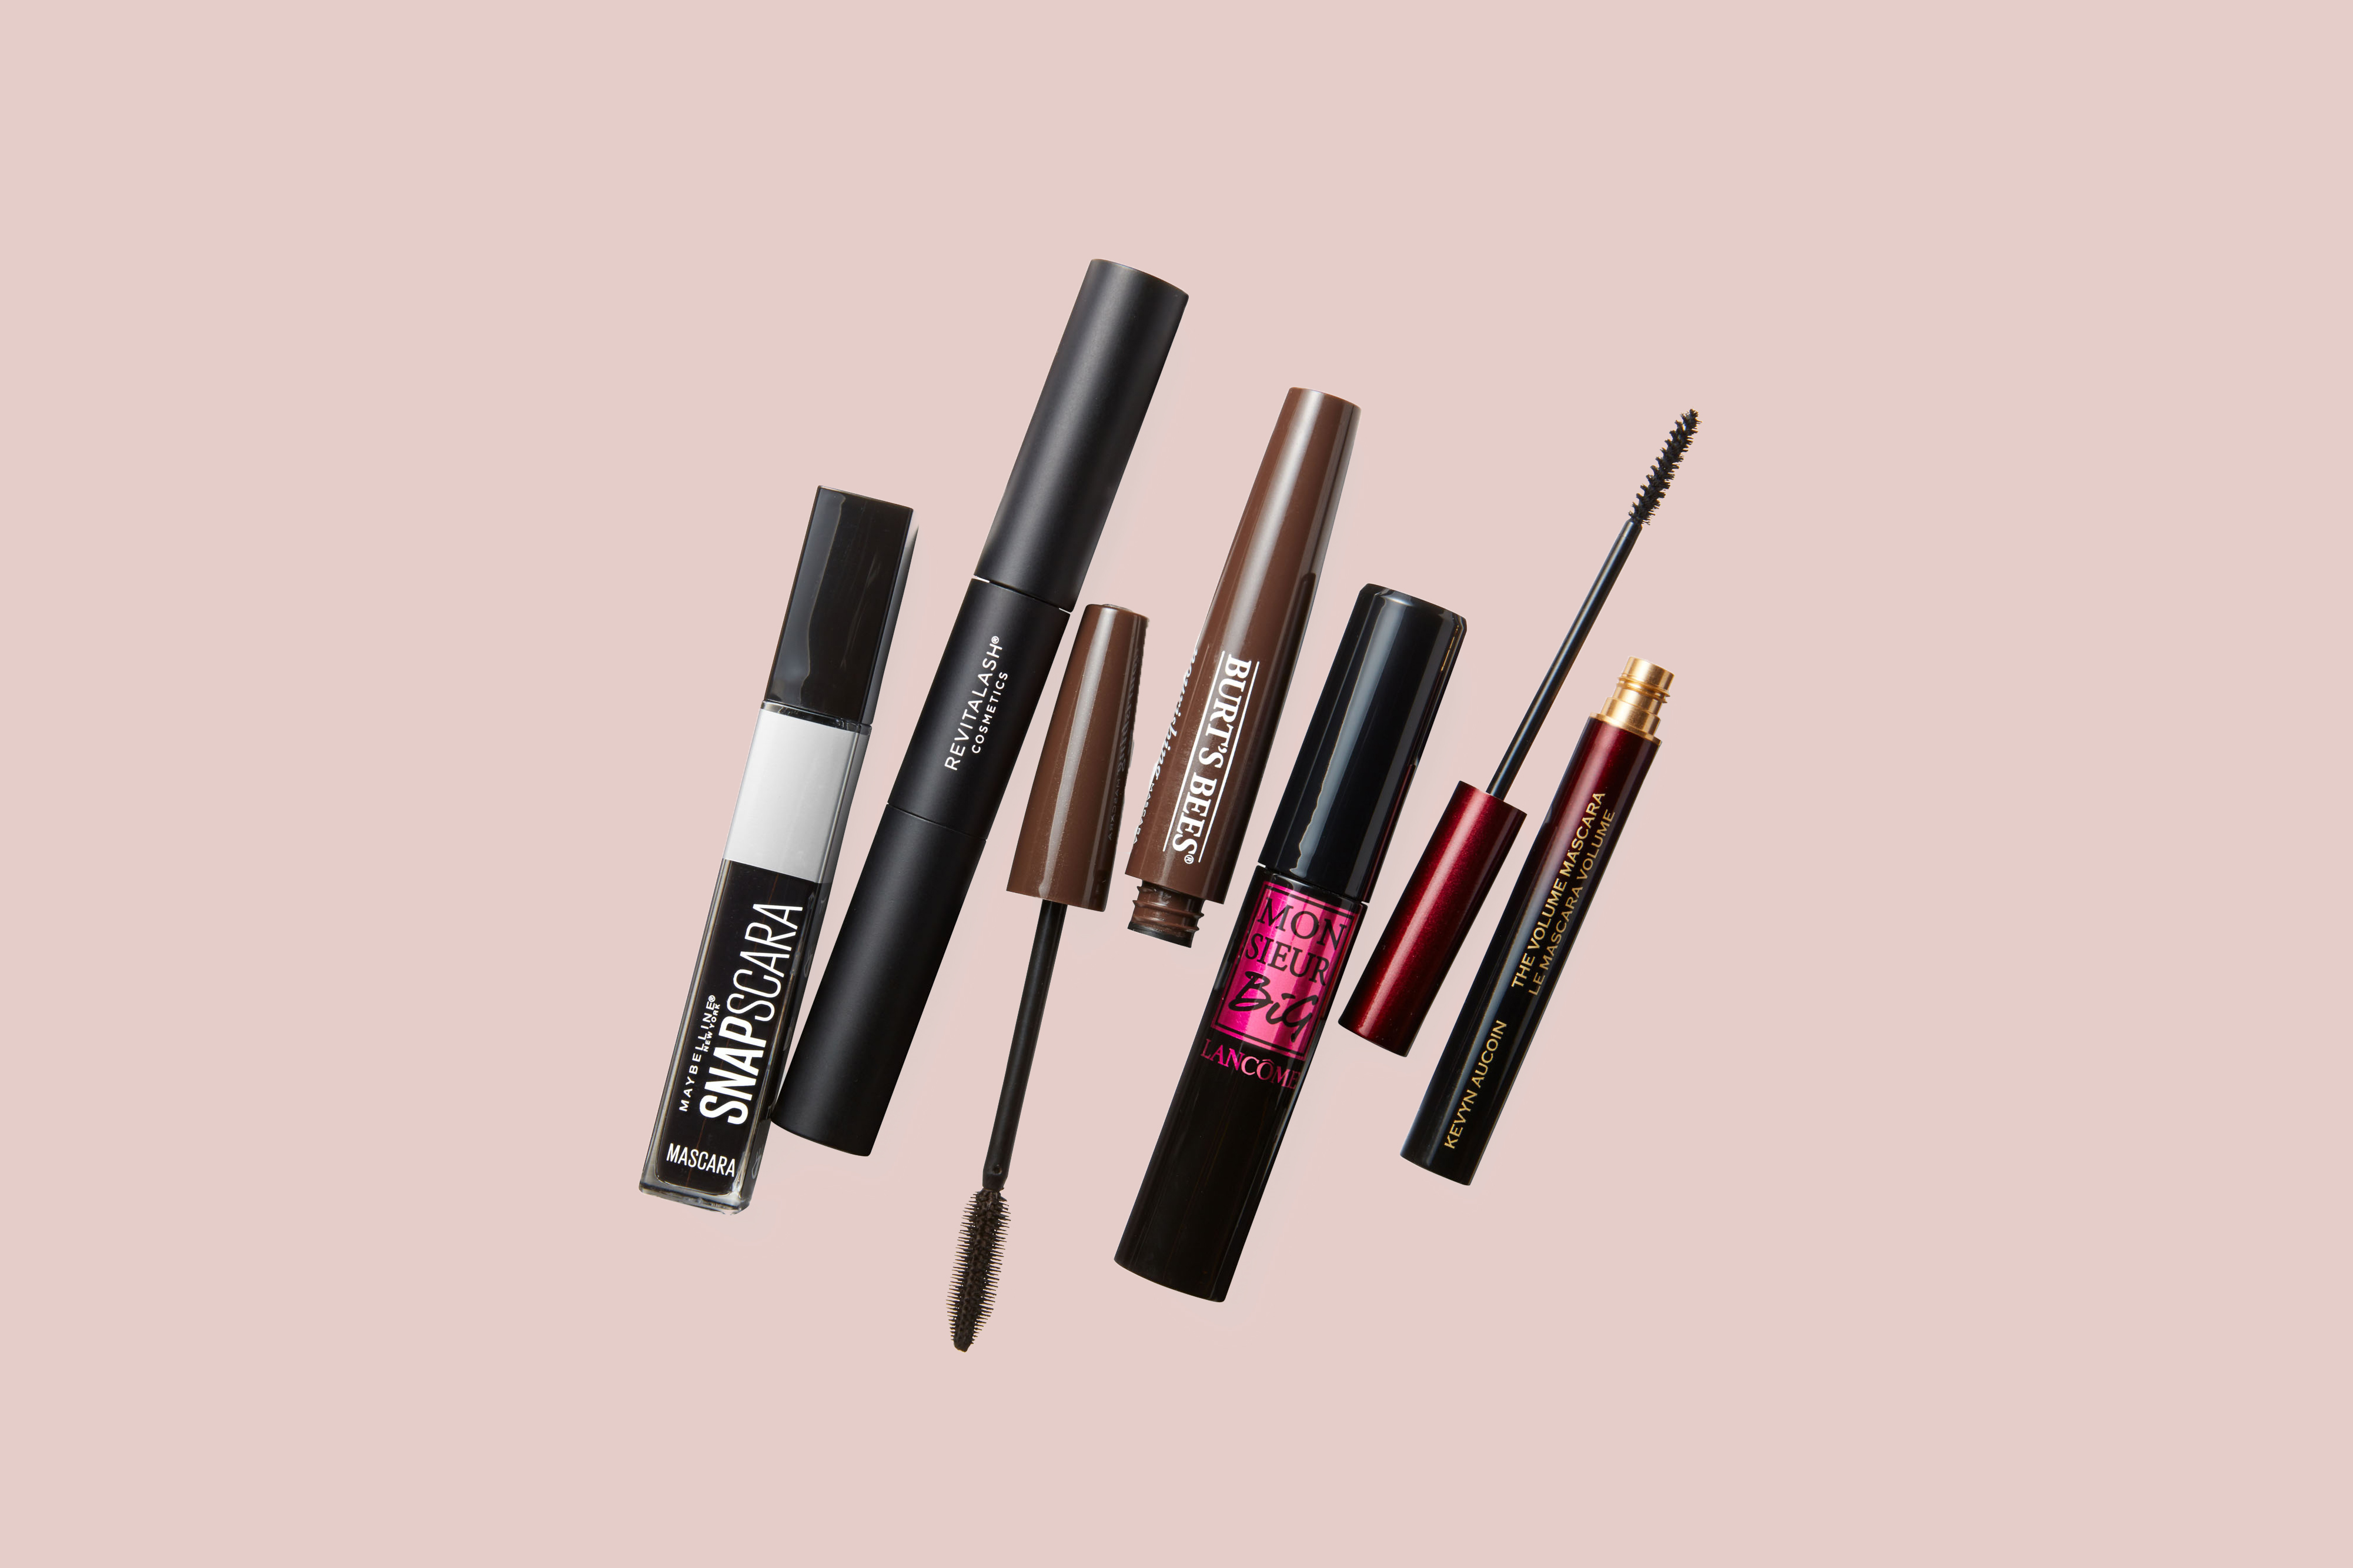 group of five different mascara brands